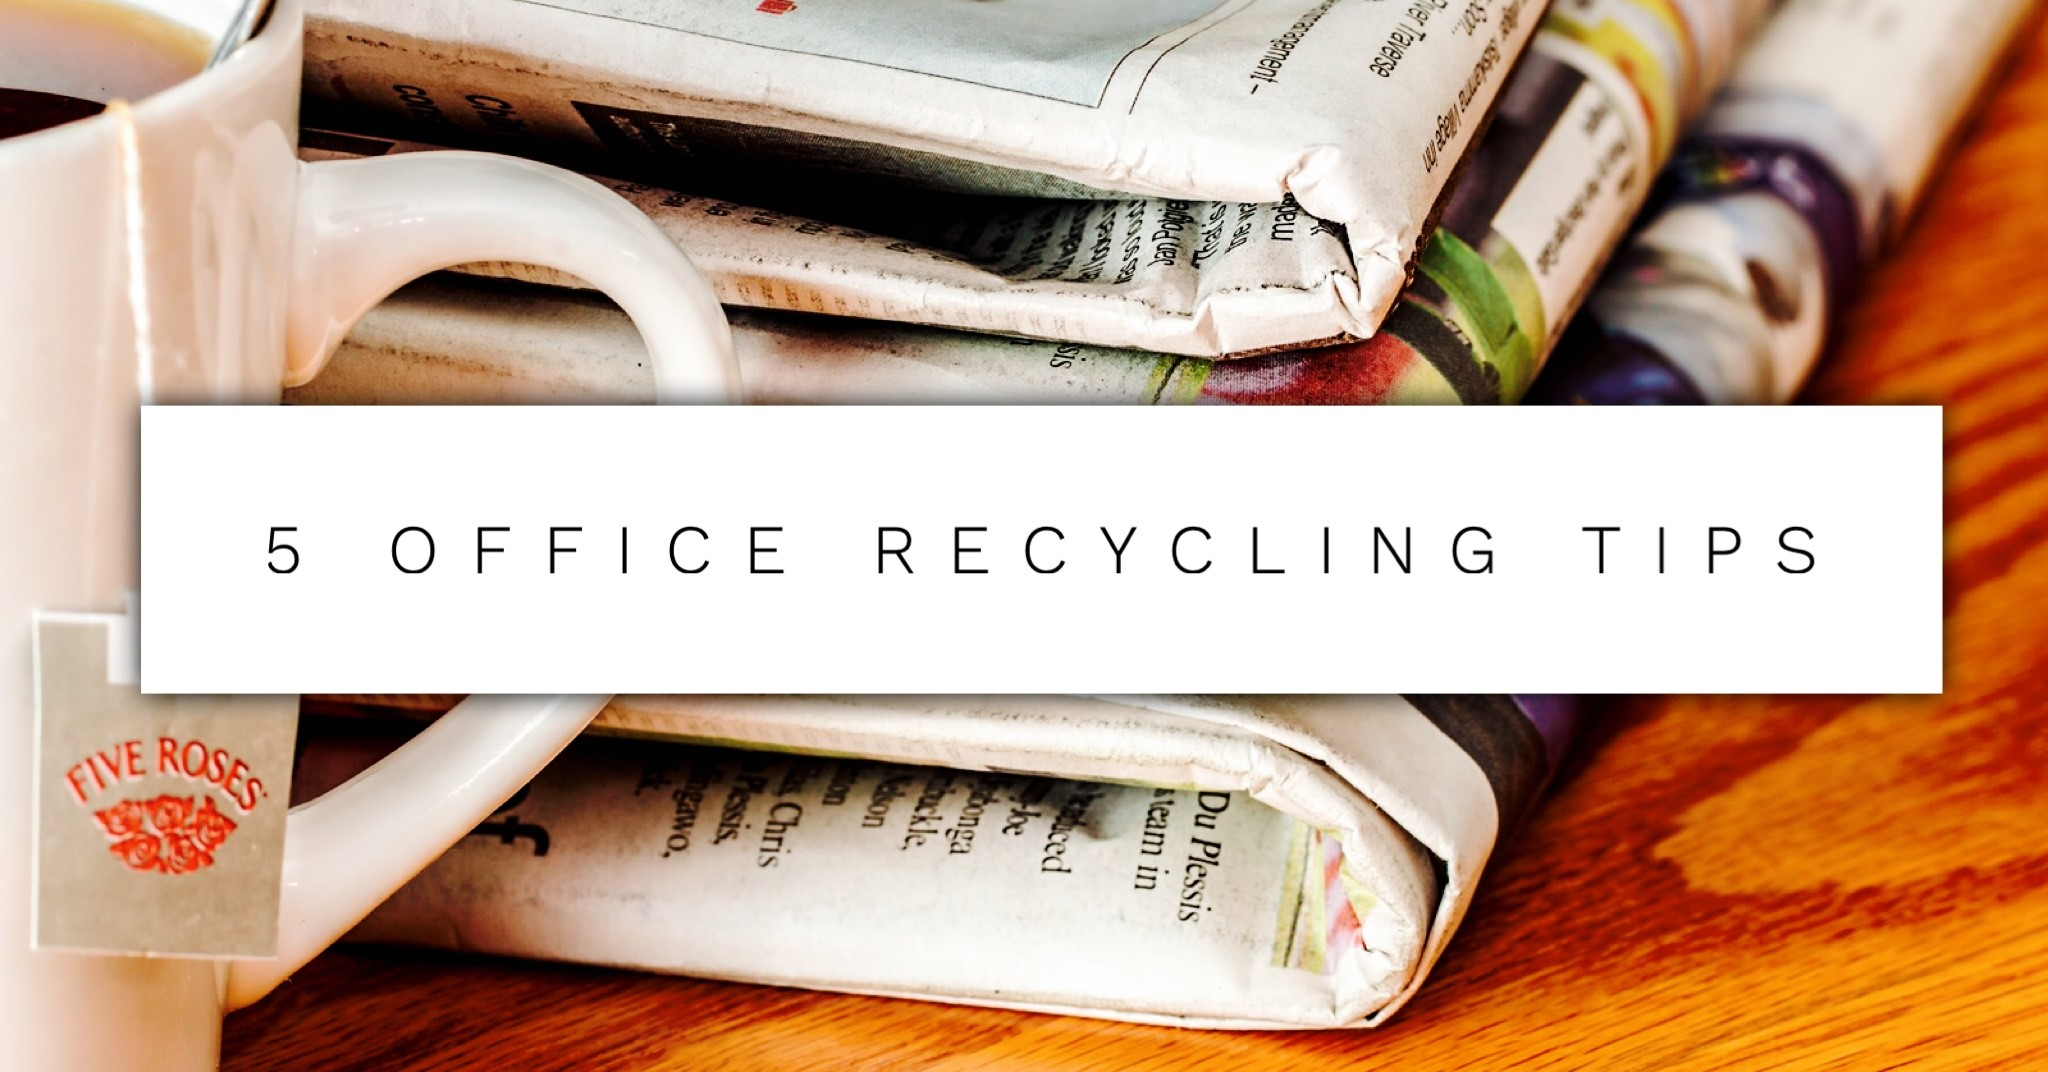 5 Office Recycling Tips